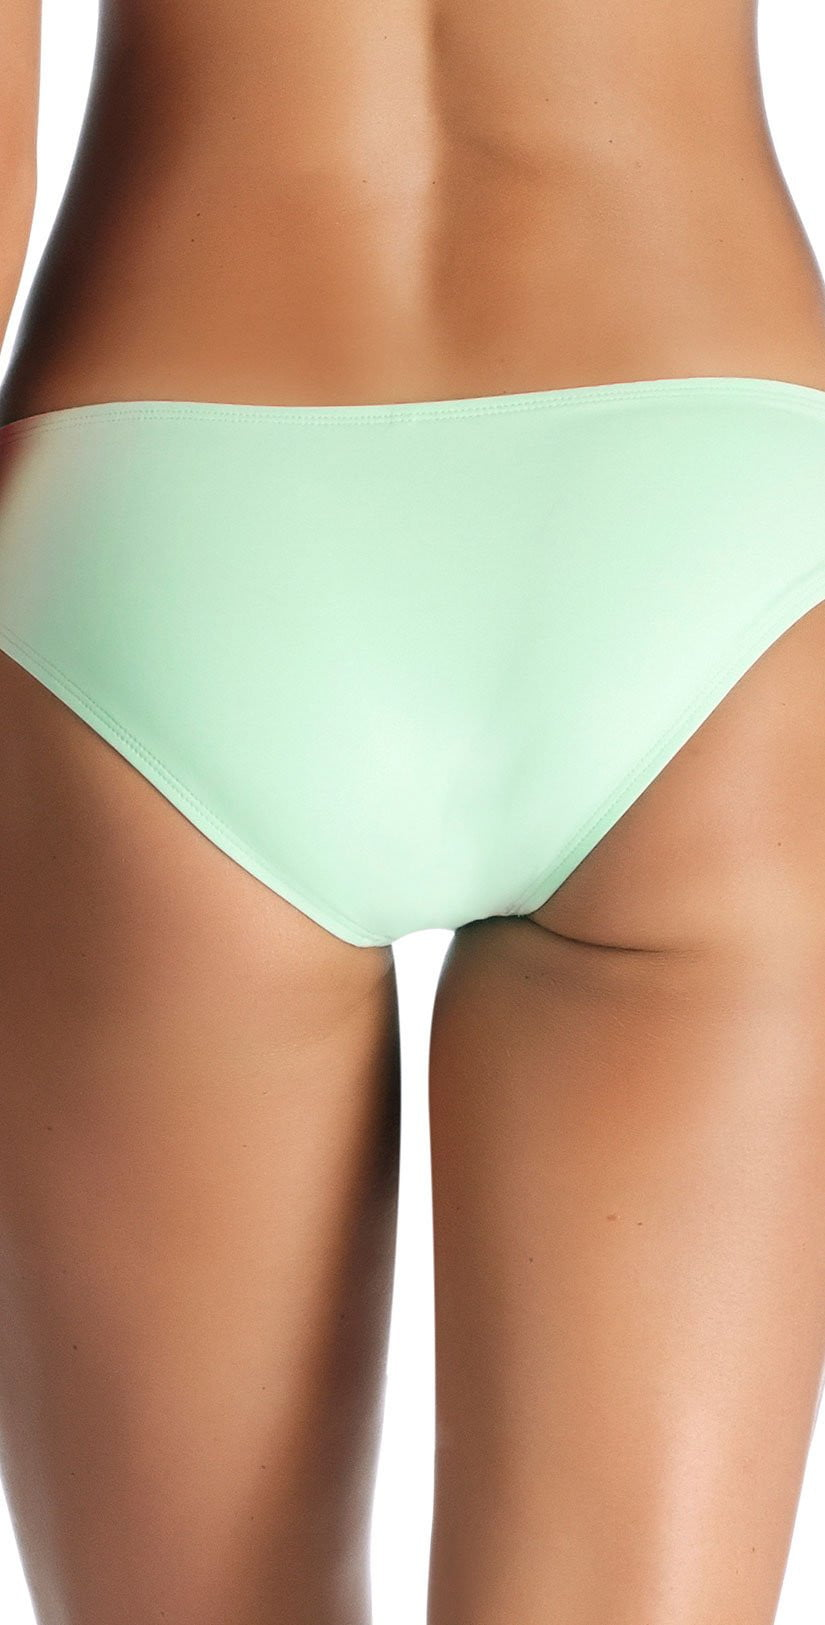 Vitamin A Emelia EcoLux Triple Strap Bottom in Glacier 717B GLE back of bottoms only